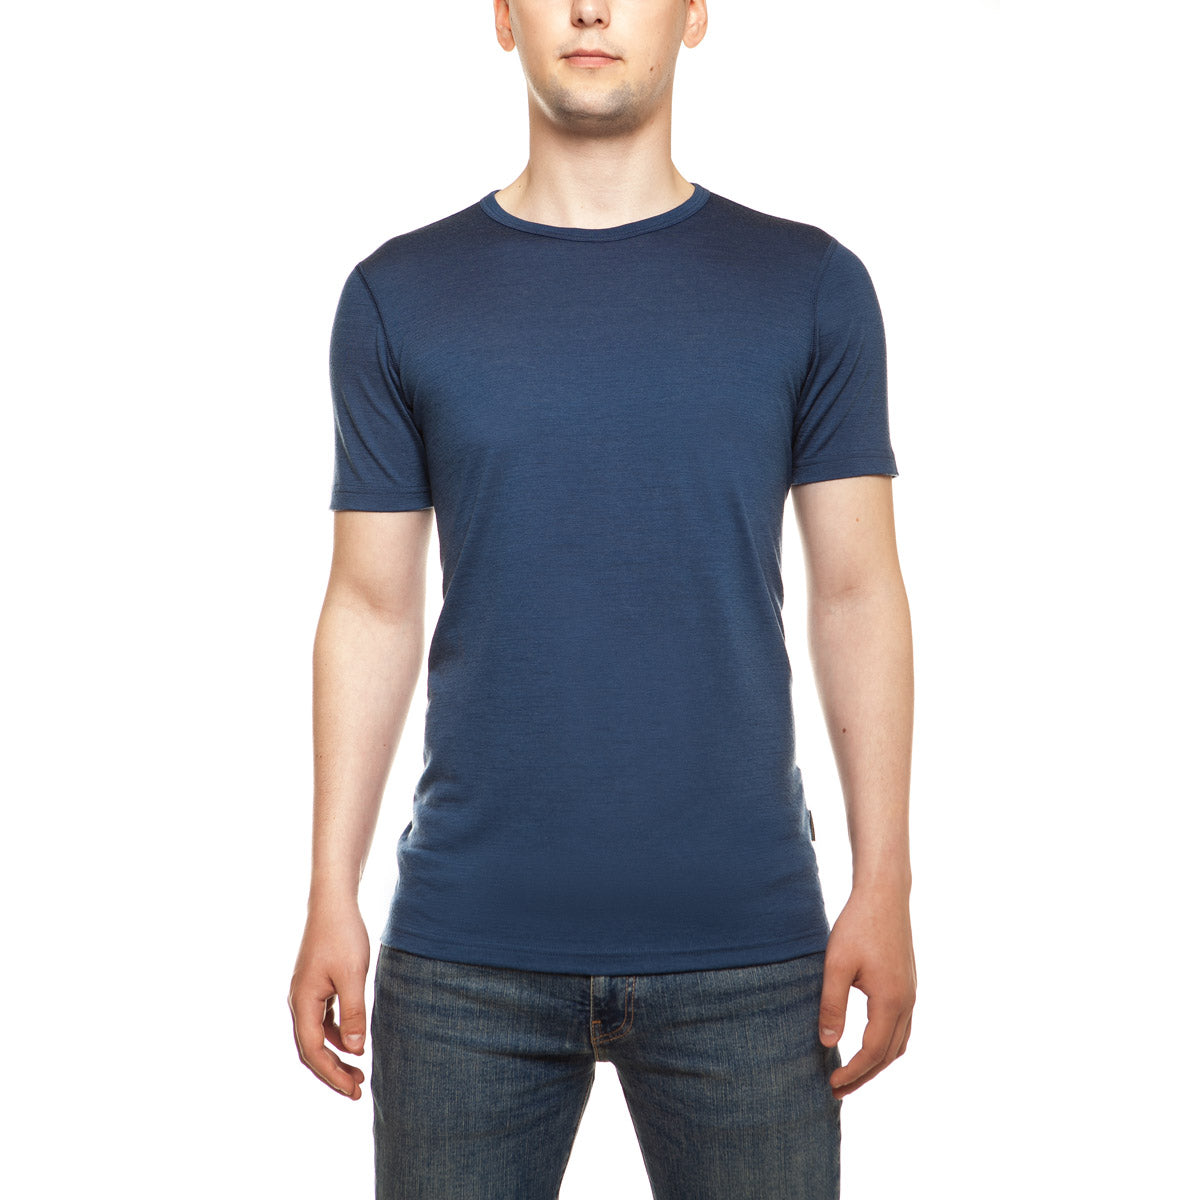 menique Men's Merino 160 Short Sleeve Crew Denim Color